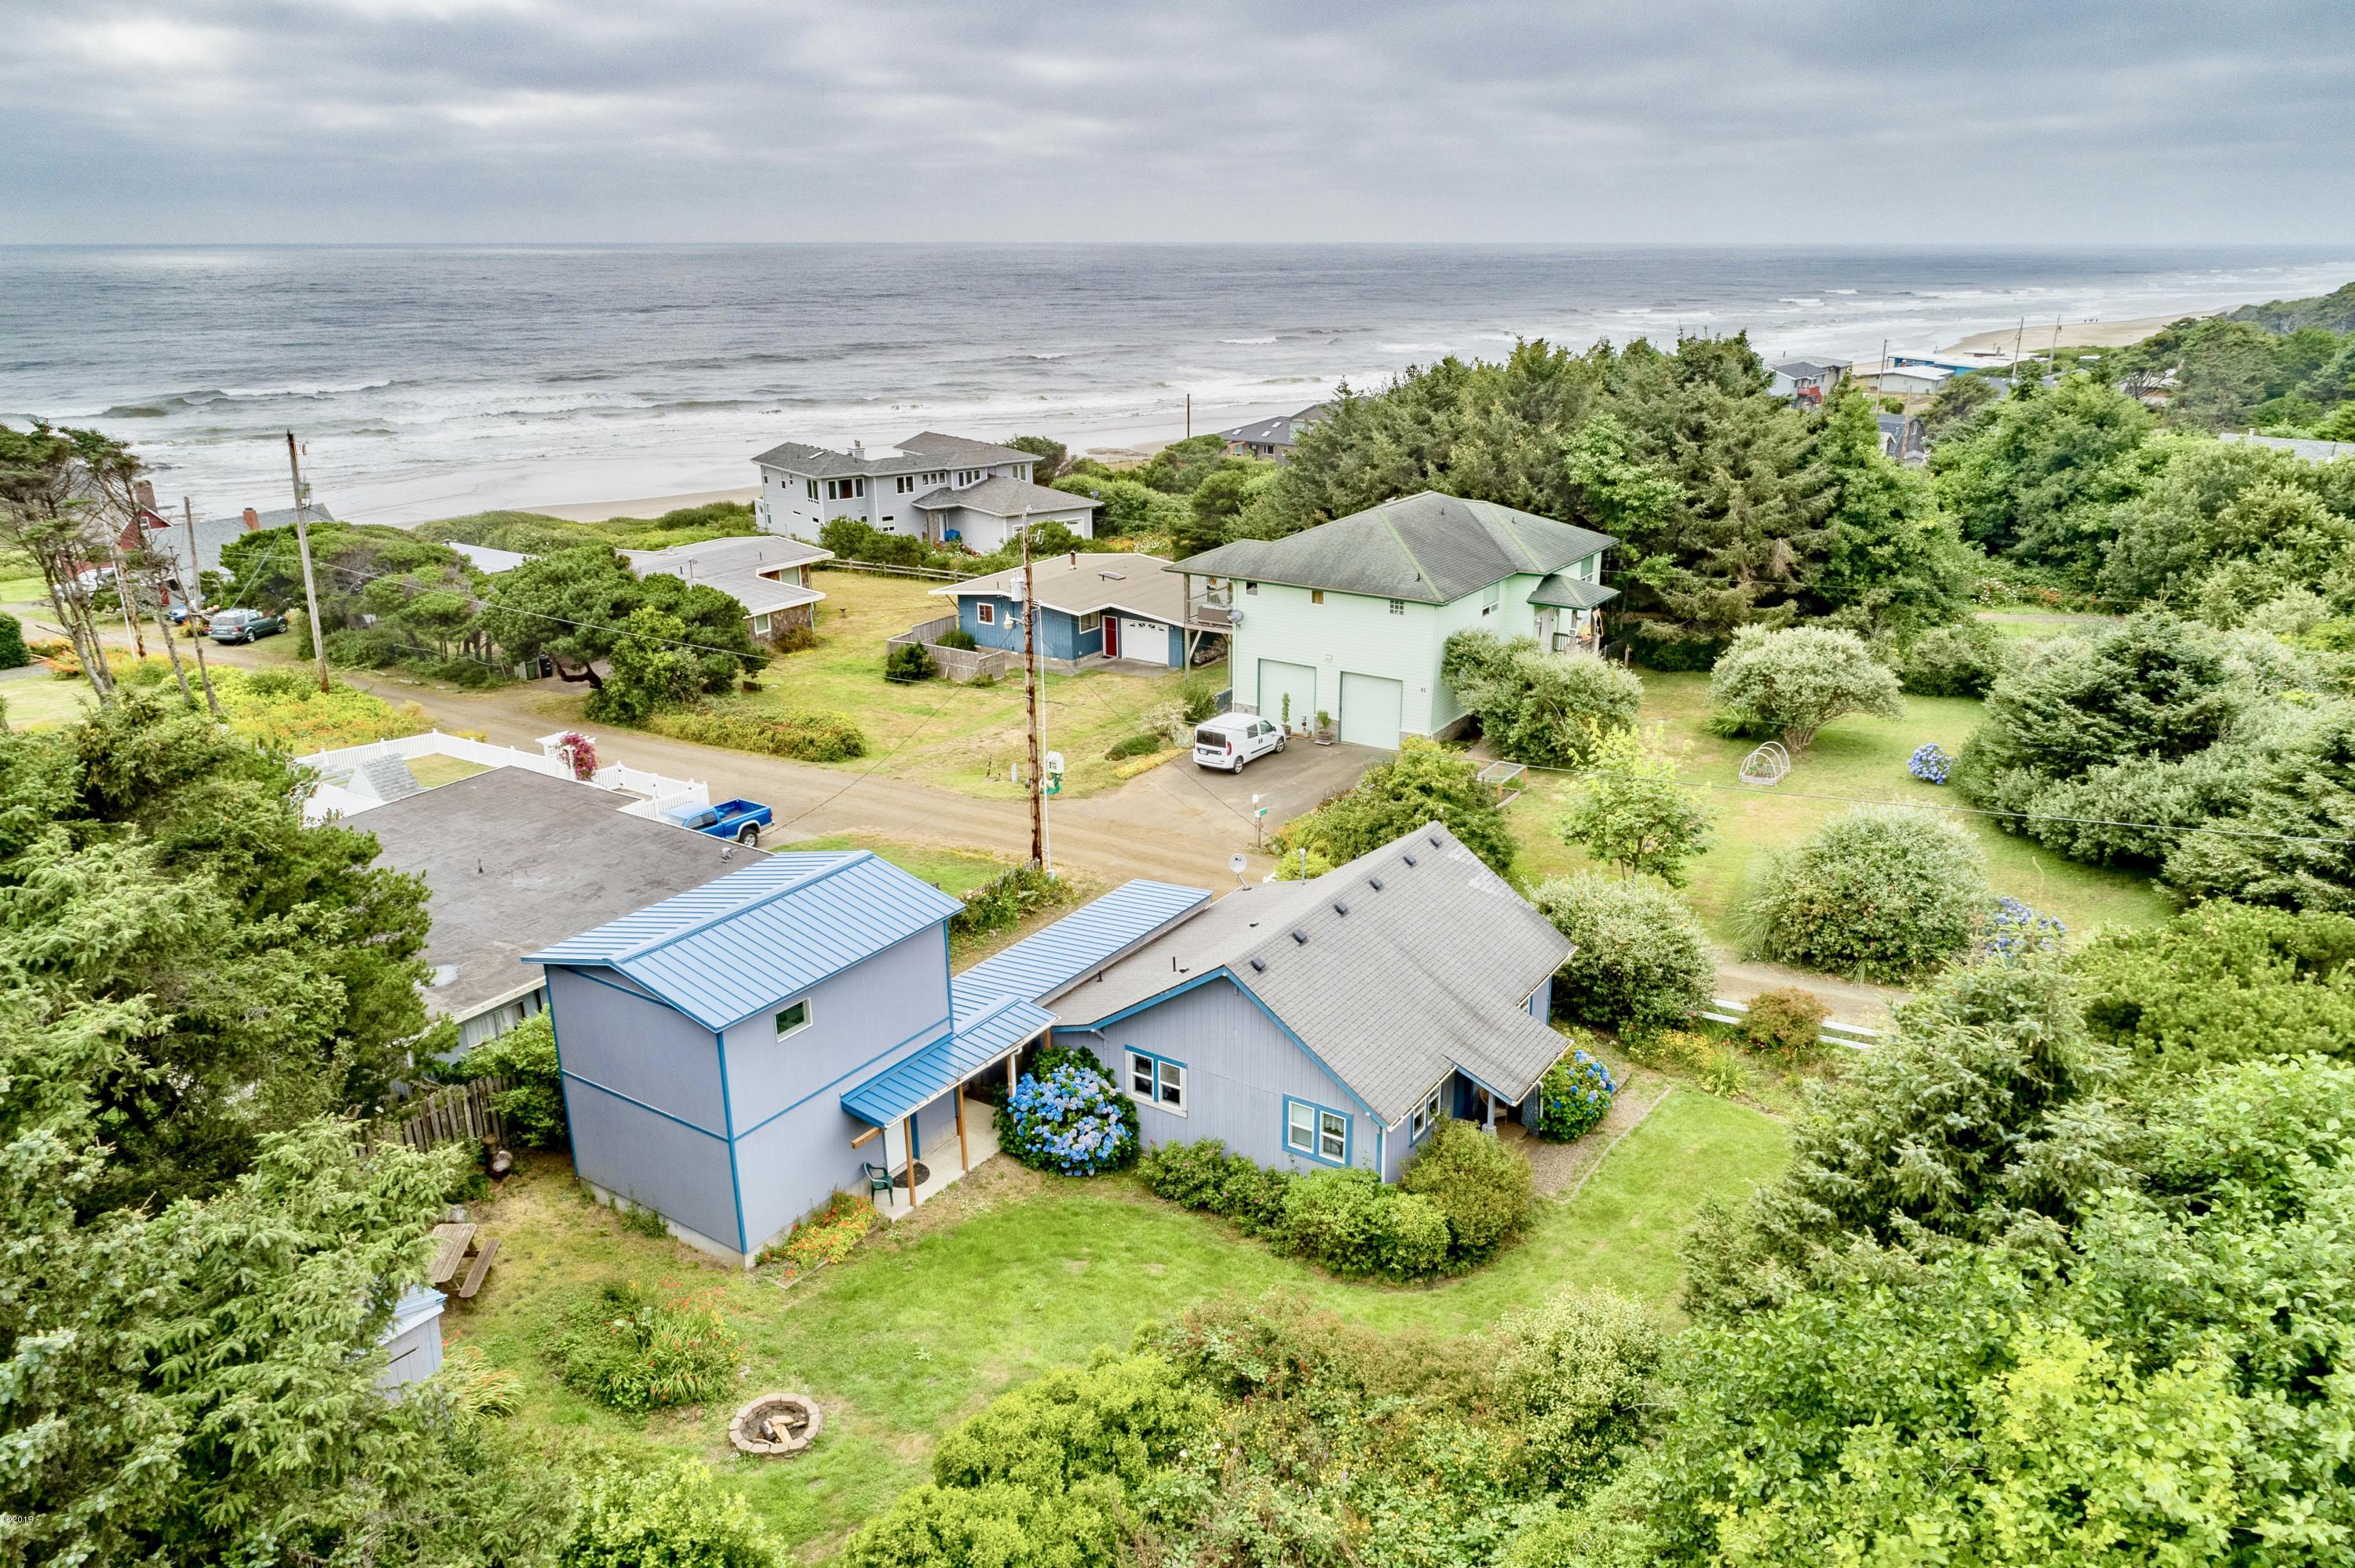 54 NW Salmon St, Yachats, OR 97498 - Aerial View 1